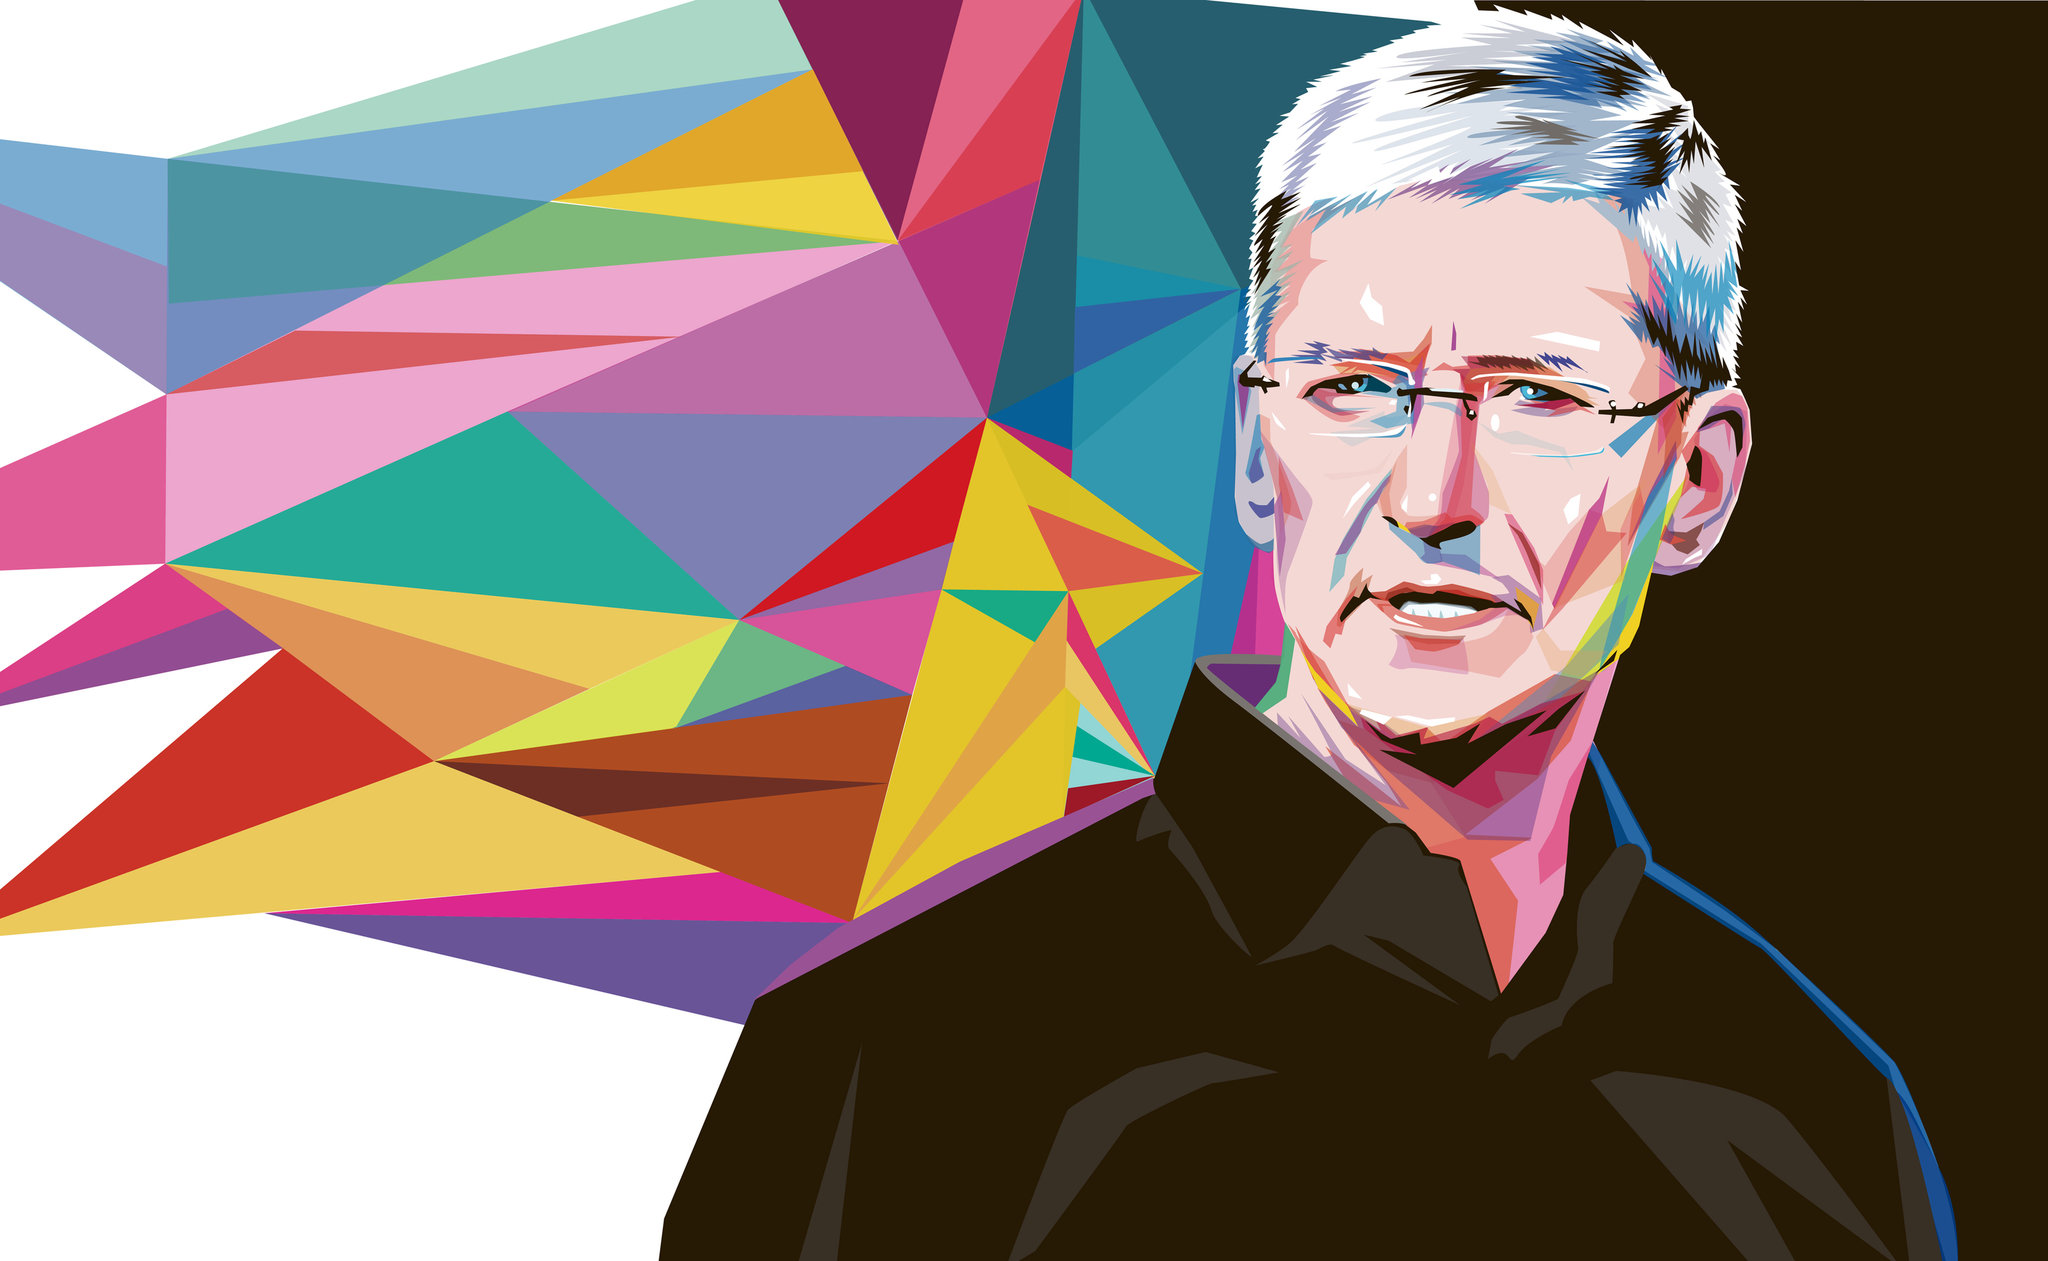 2048x1261 - Tim Cook Wallpapers 17